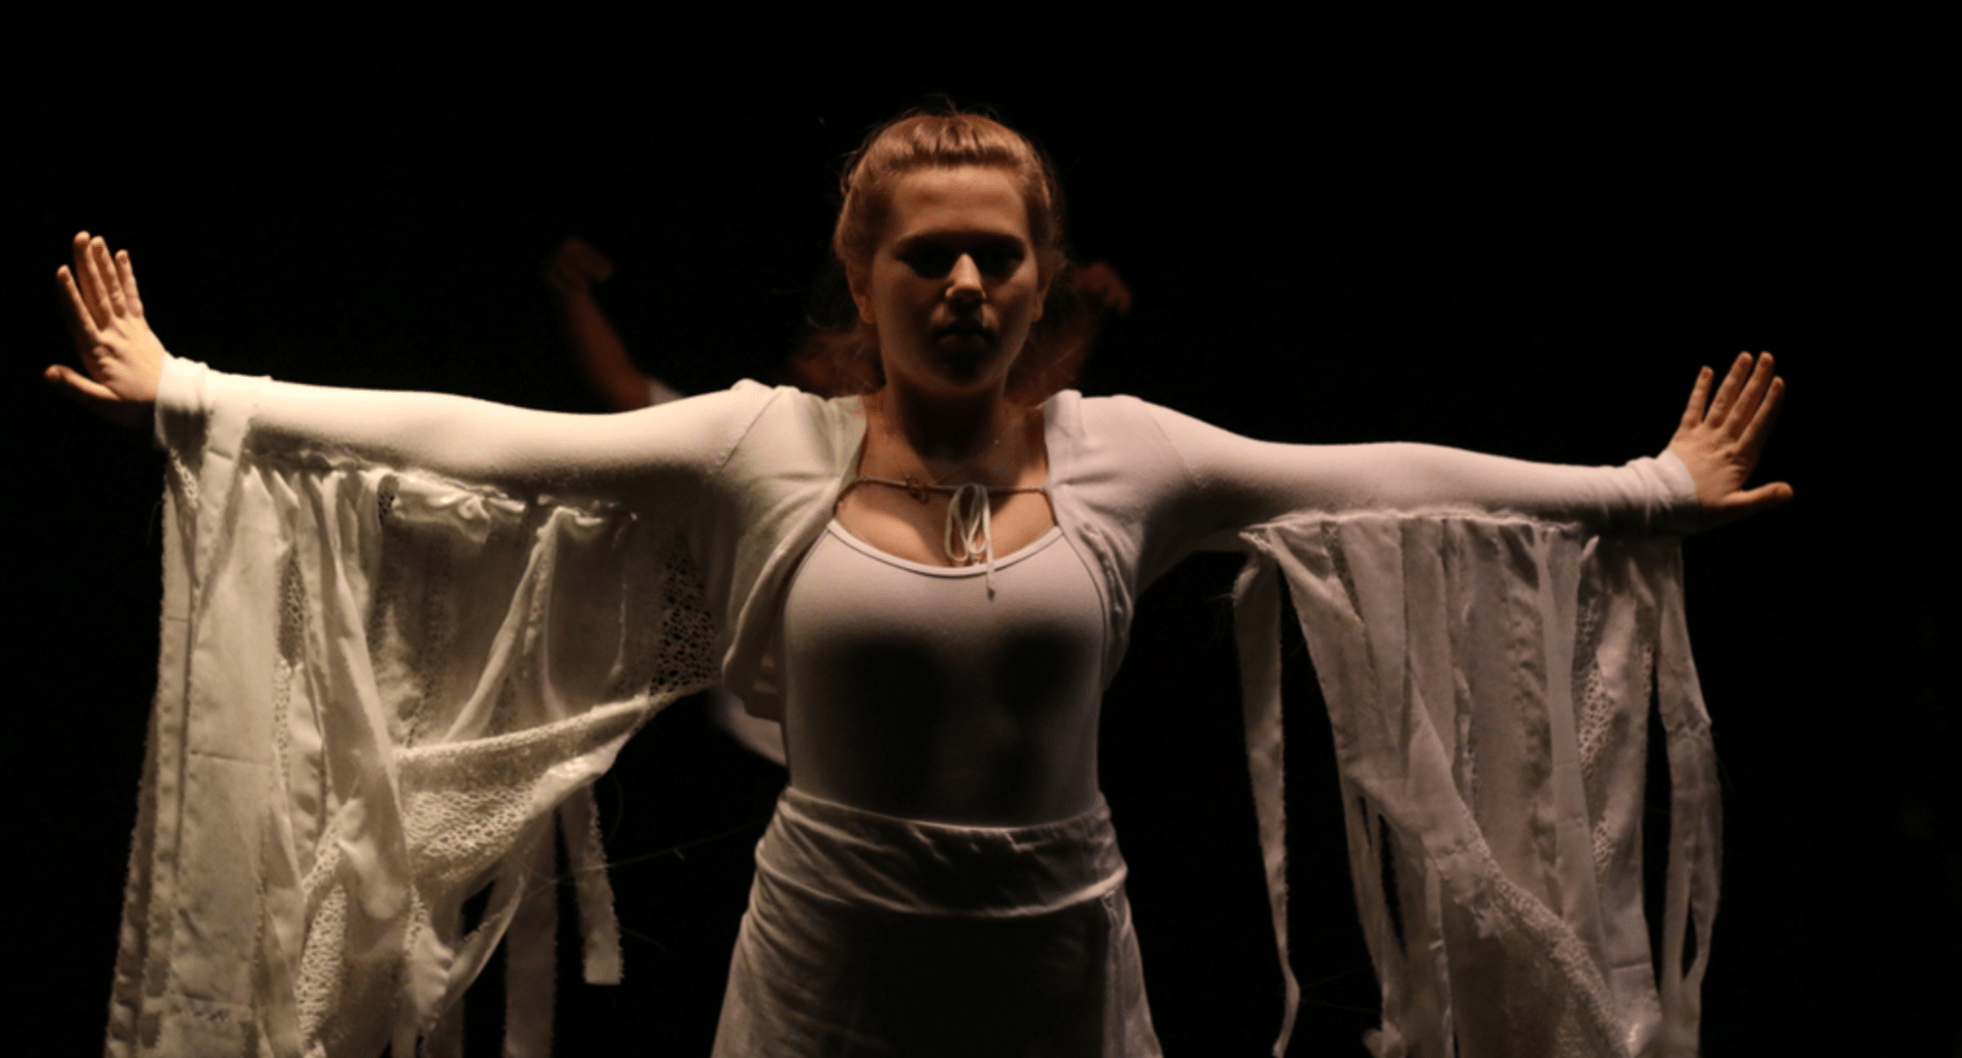 Alexa Frandzel '18 performs a dance during the Advanced Dance I and II showcase. Credit: Pavan Tauh '18/Chronicle